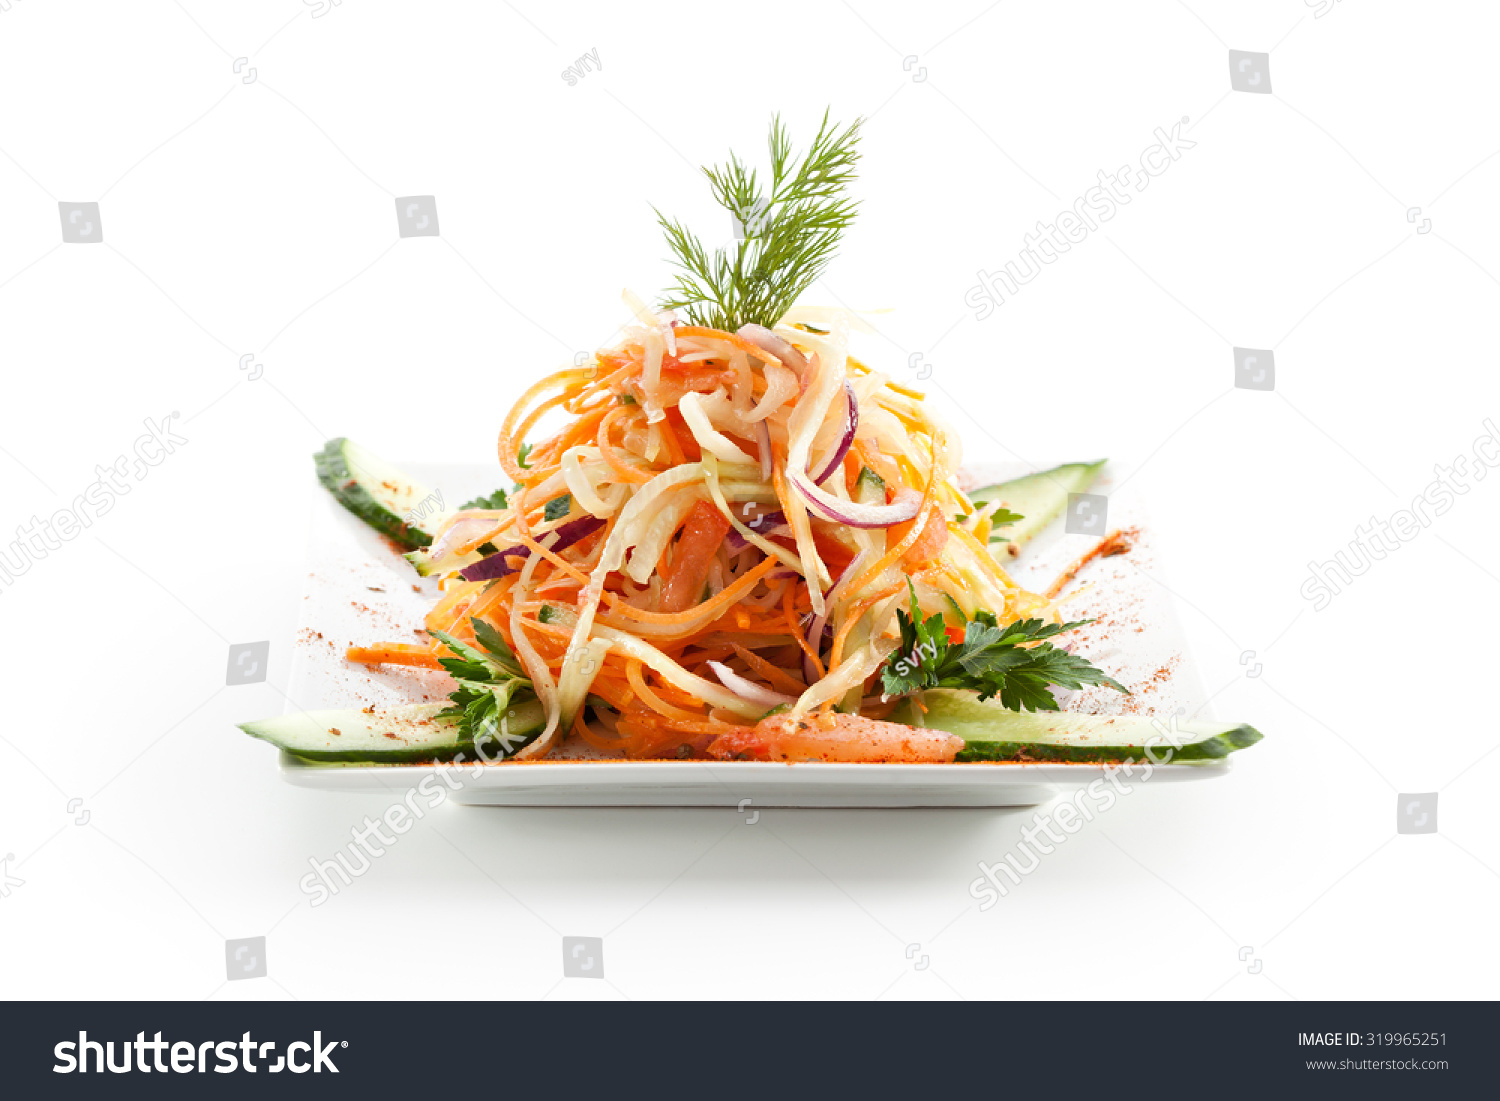 how to eat carrot greens